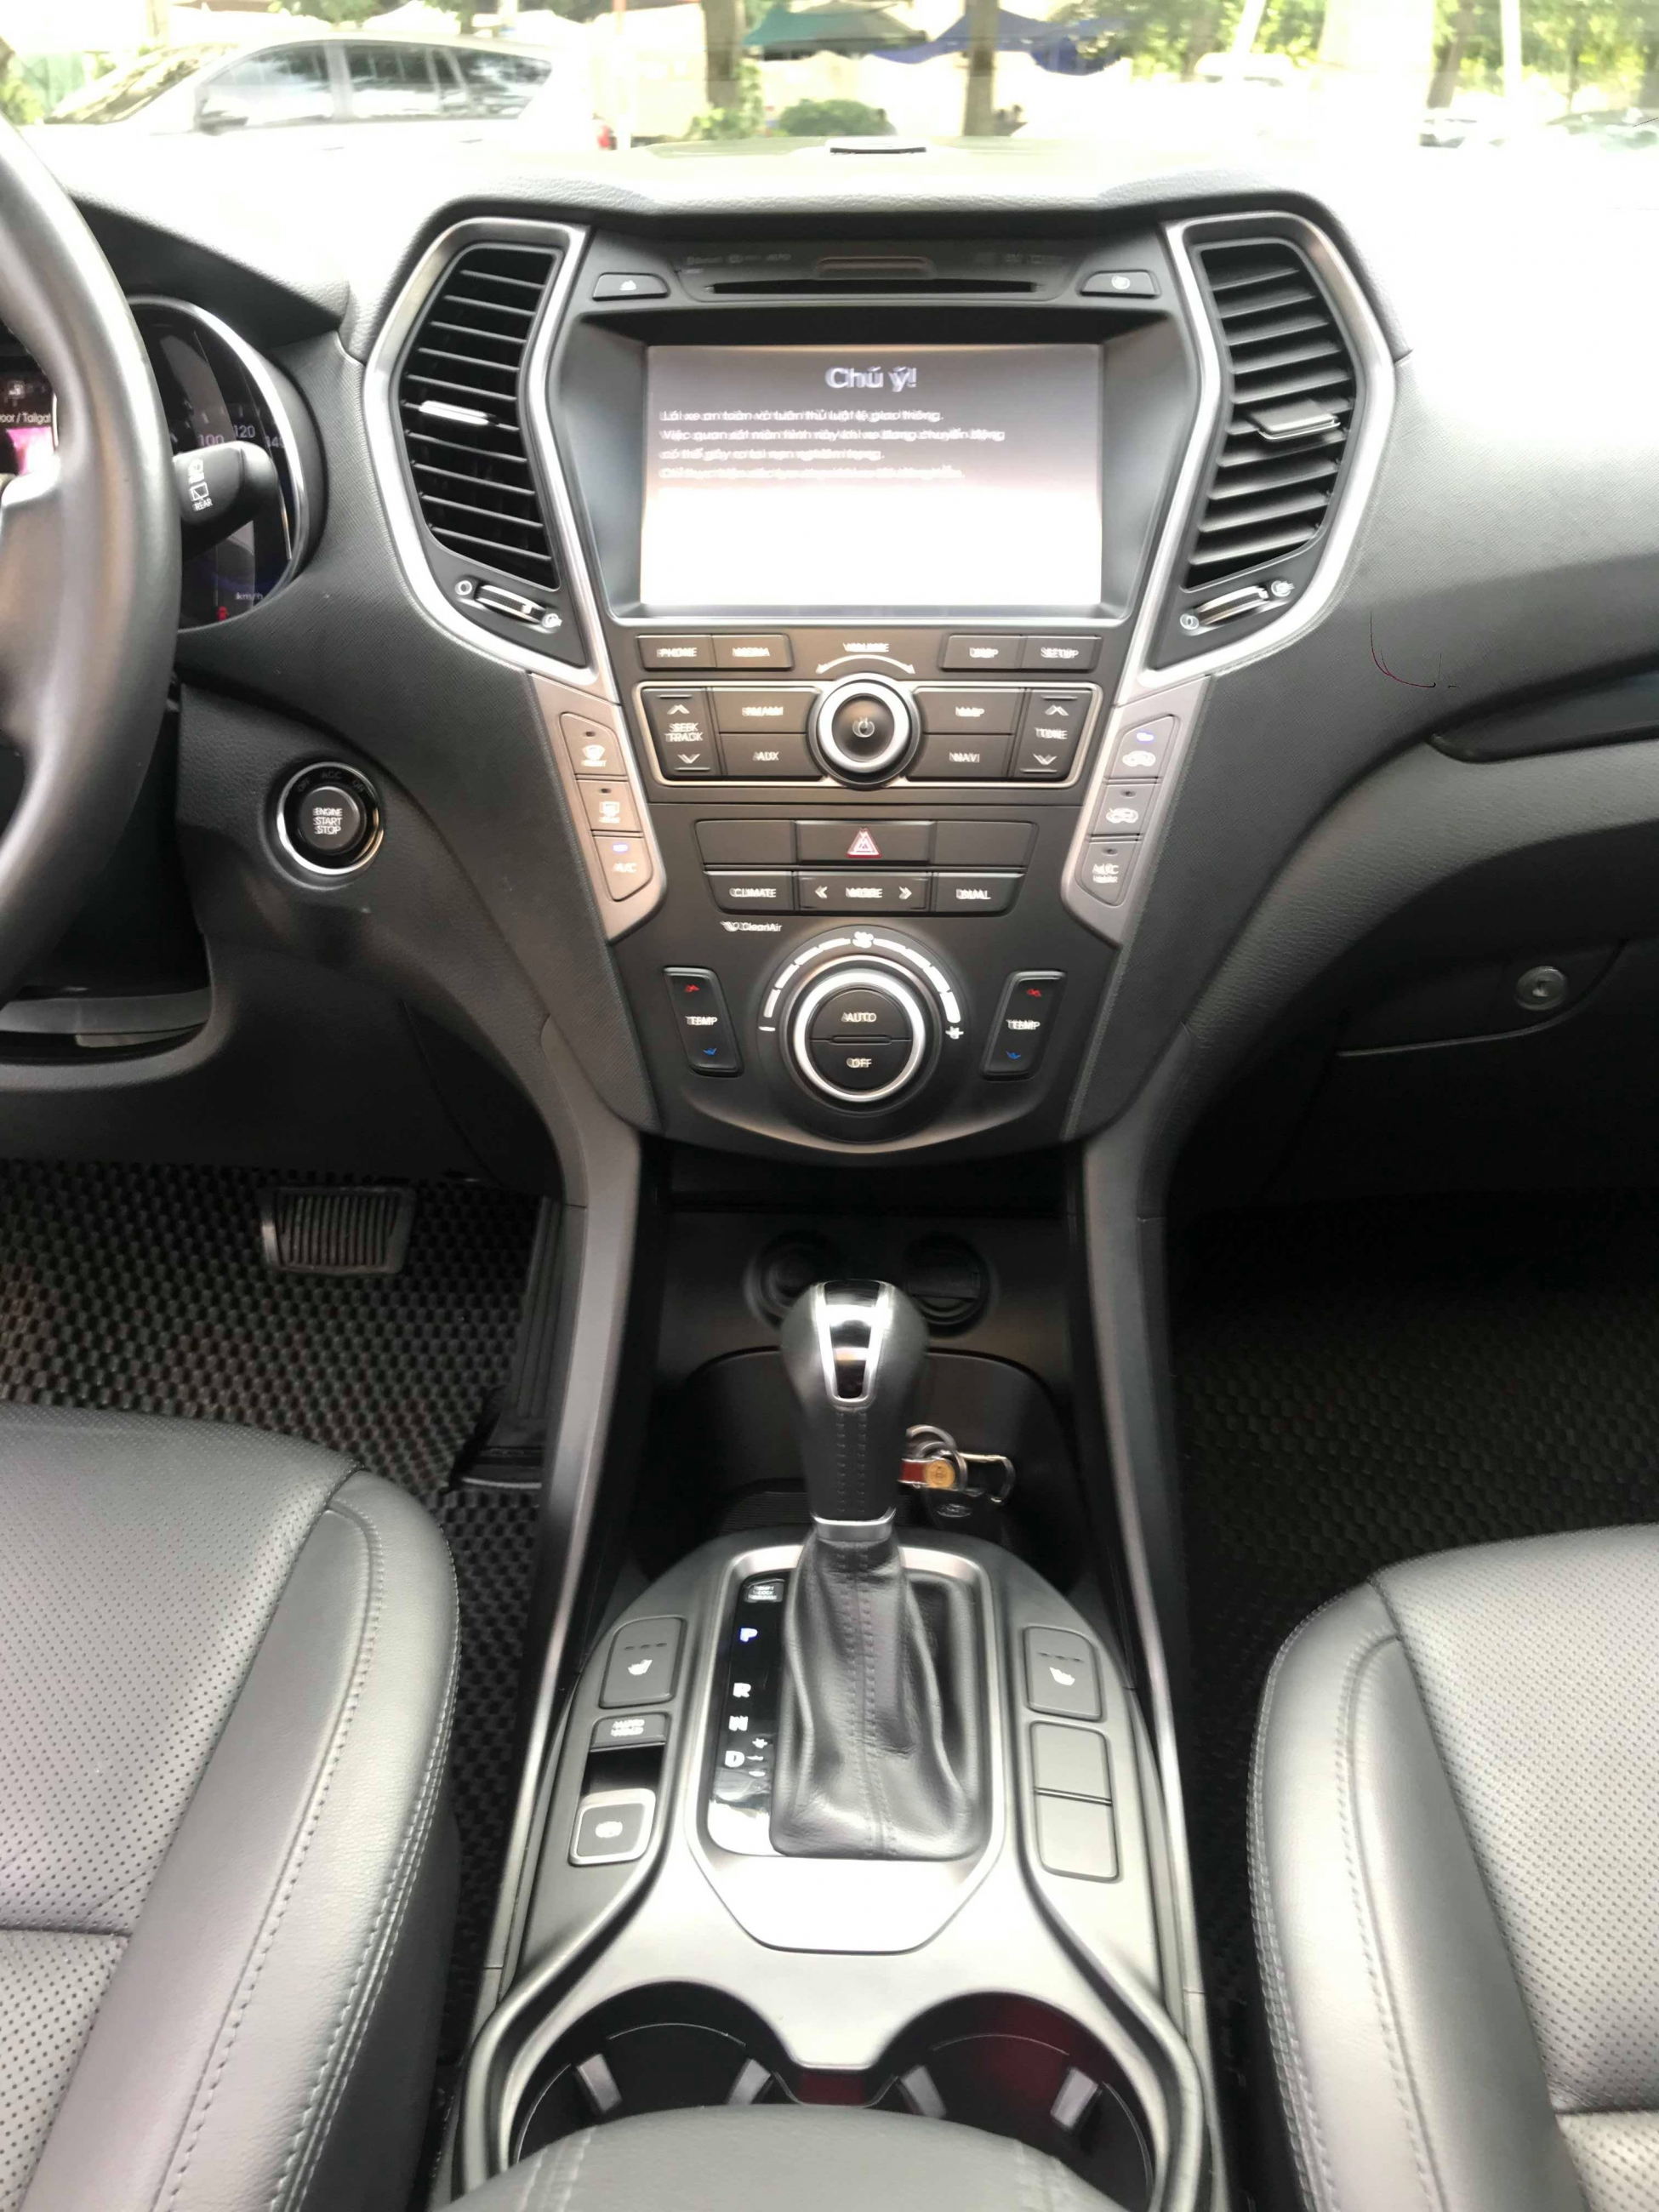 Hyundai Santa-Fe CRDi 2.2AT 2015 - 8